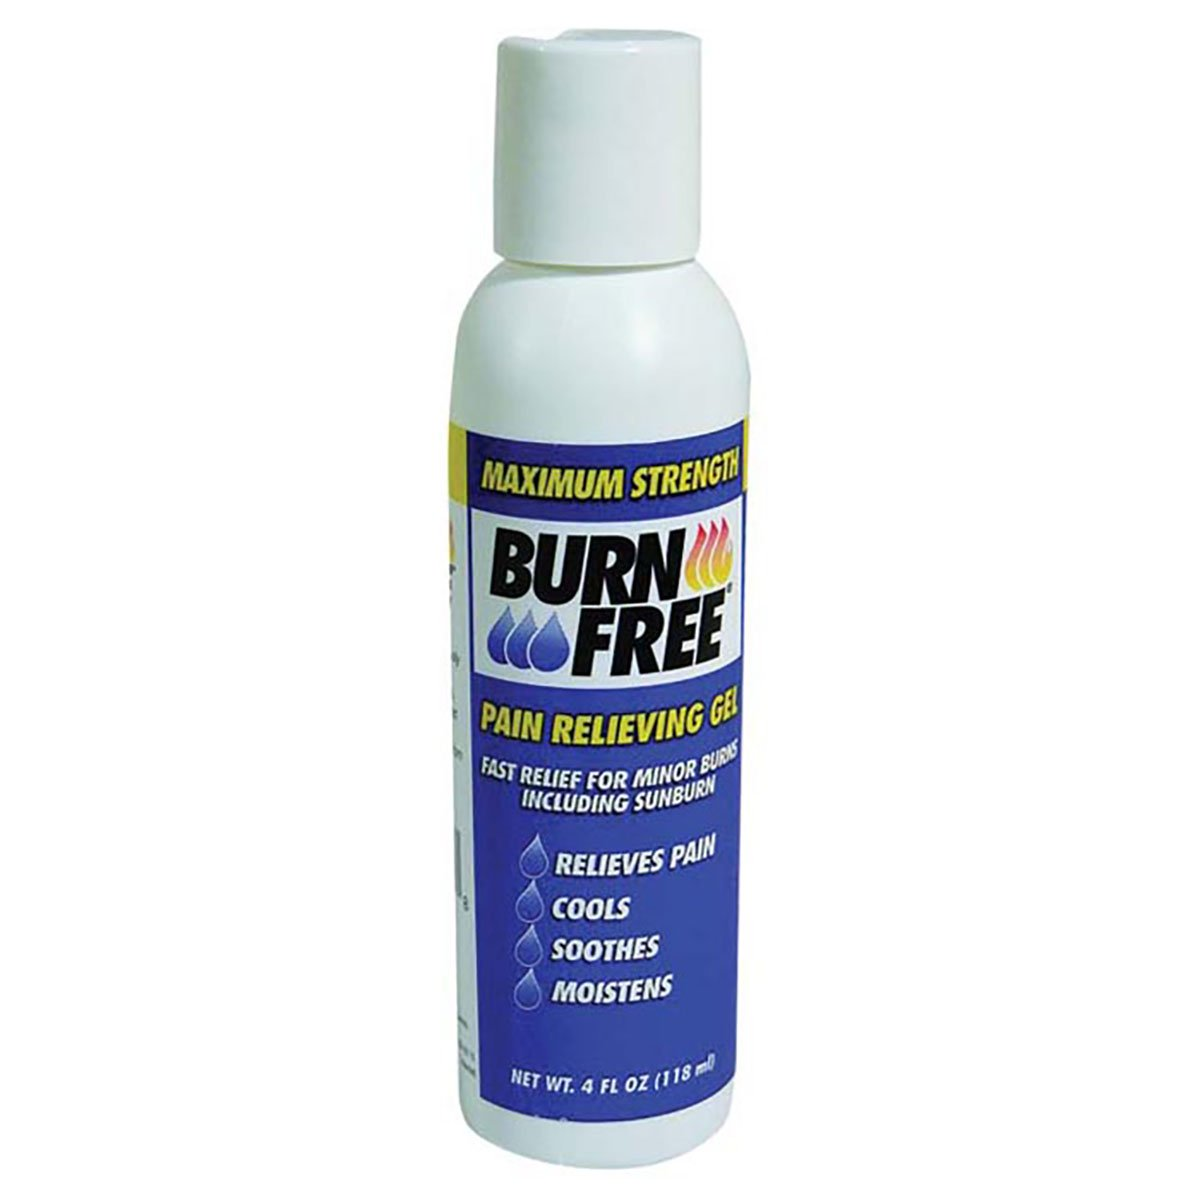 ee14a66f4c46 Best Rated in Burn Care Products   Helpful Customer Reviews - Amazon.com